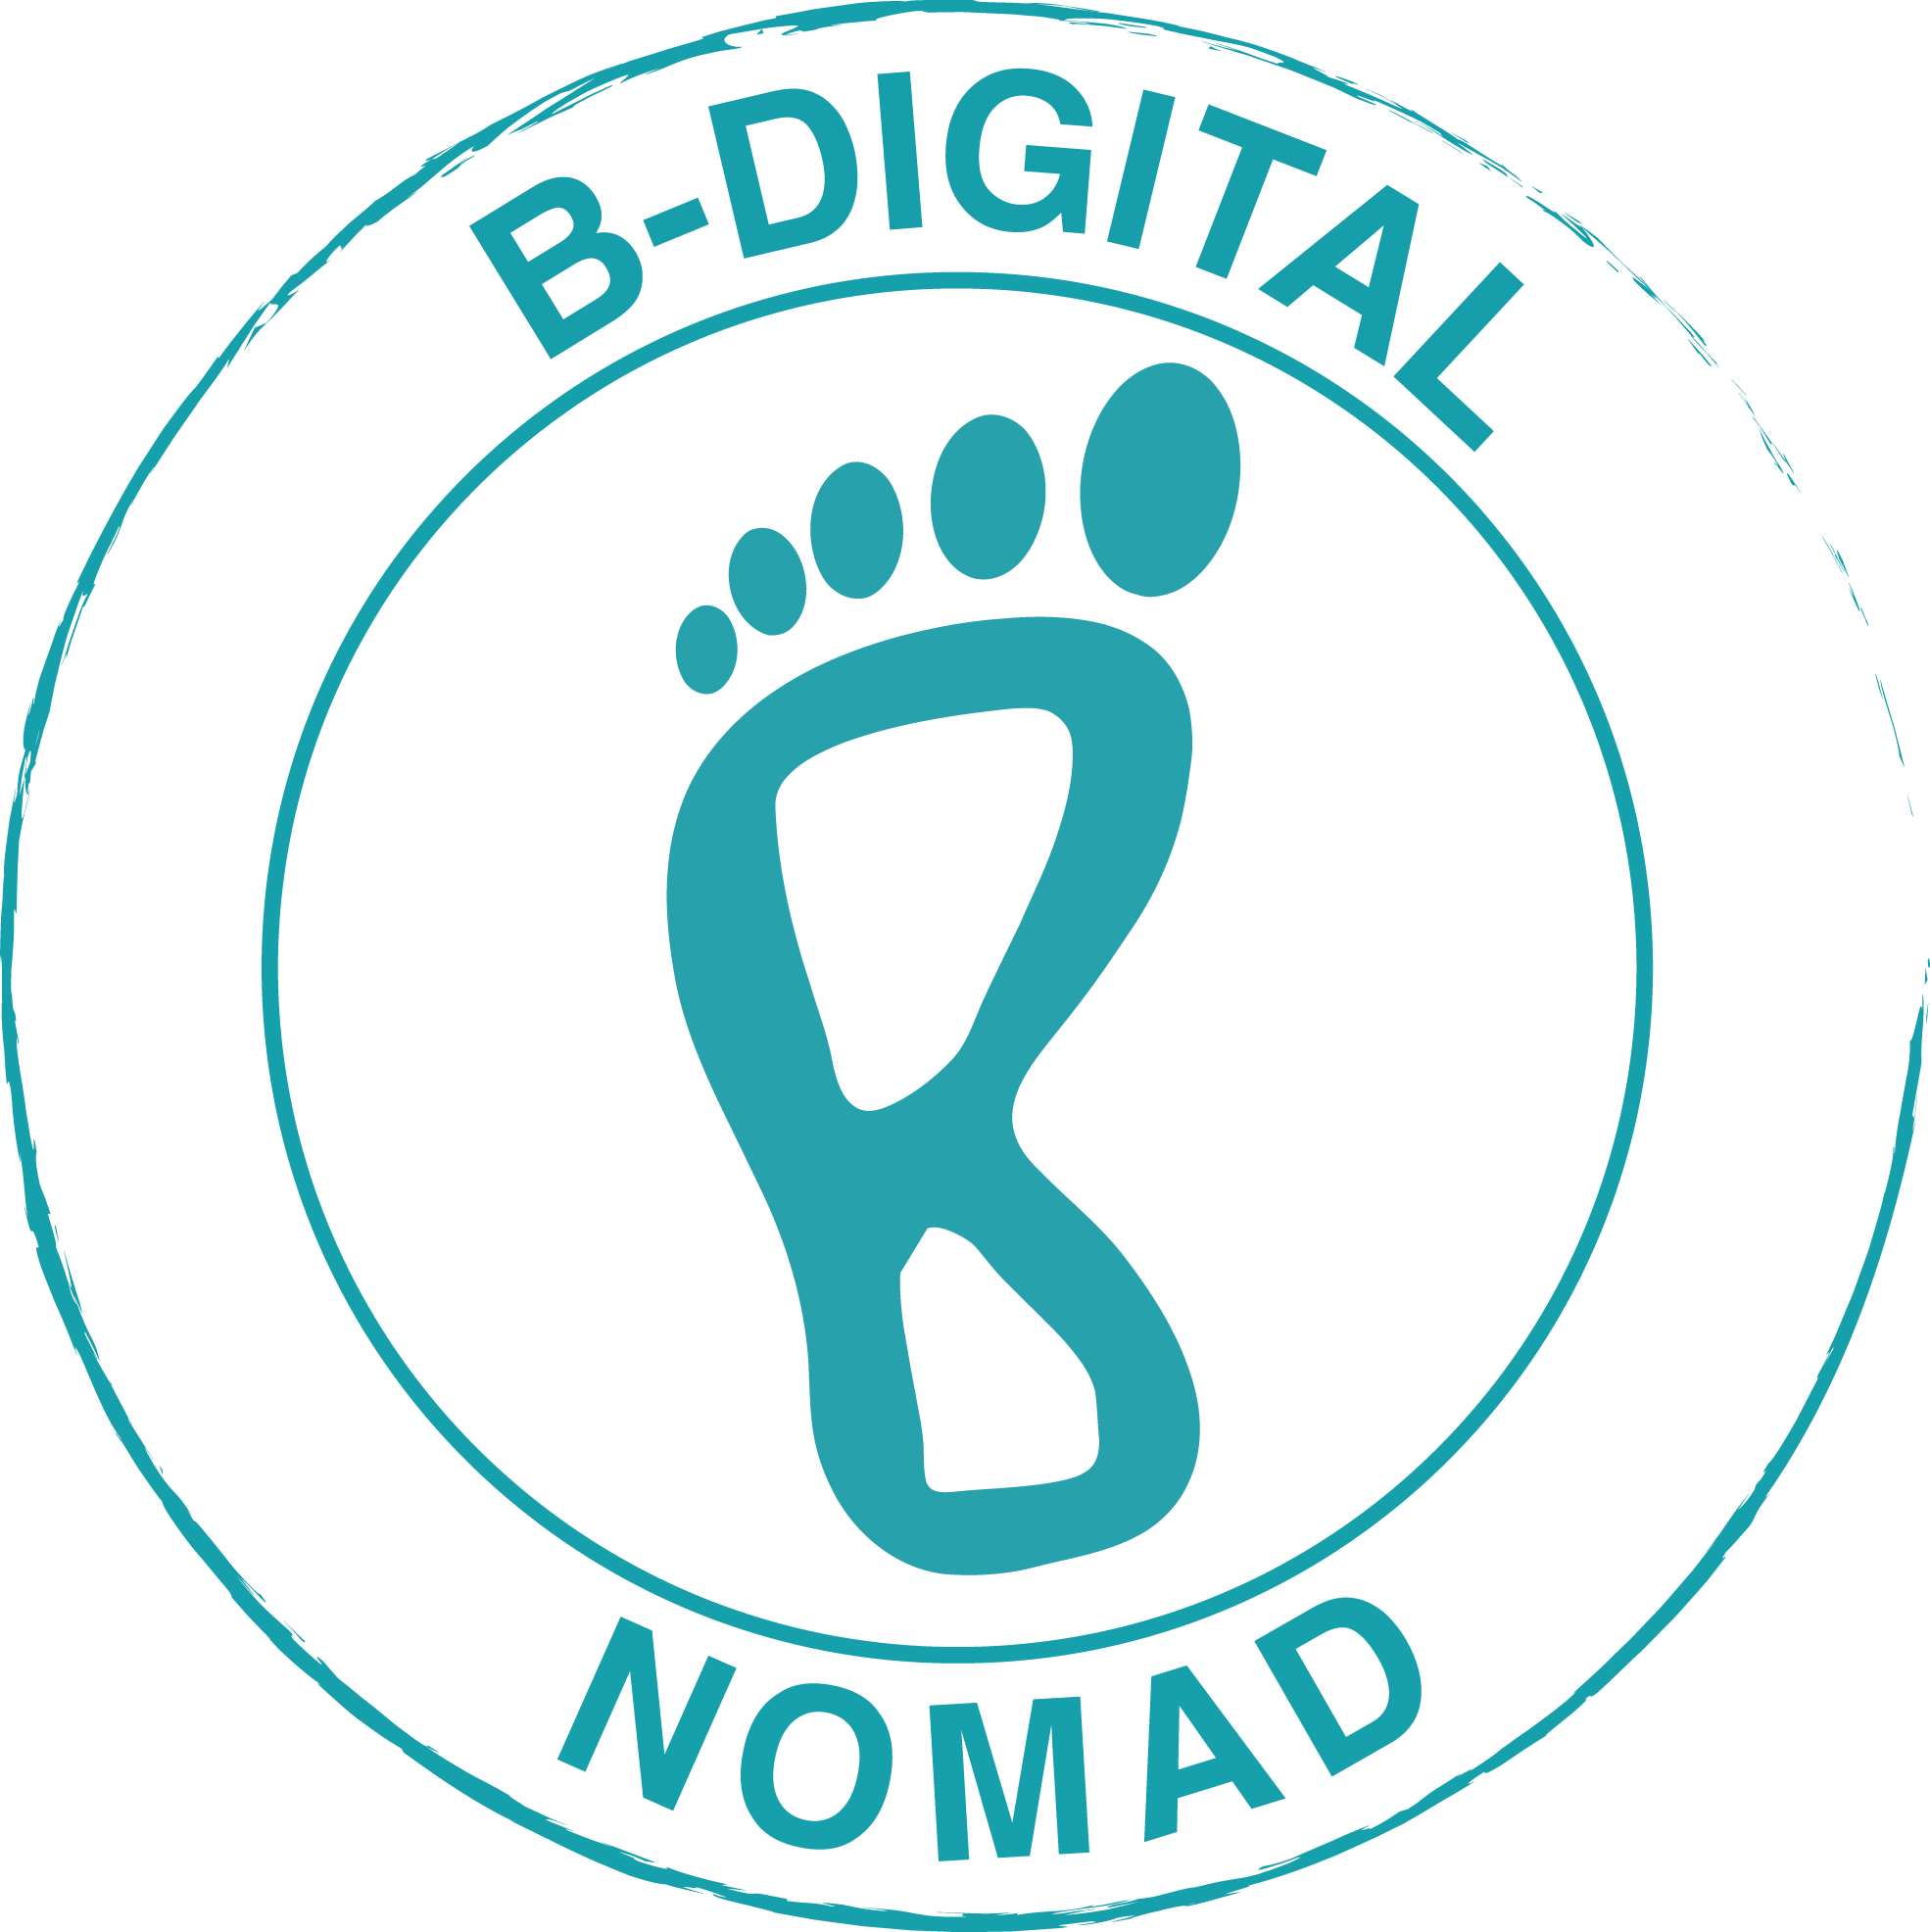 B-Digital Nomad